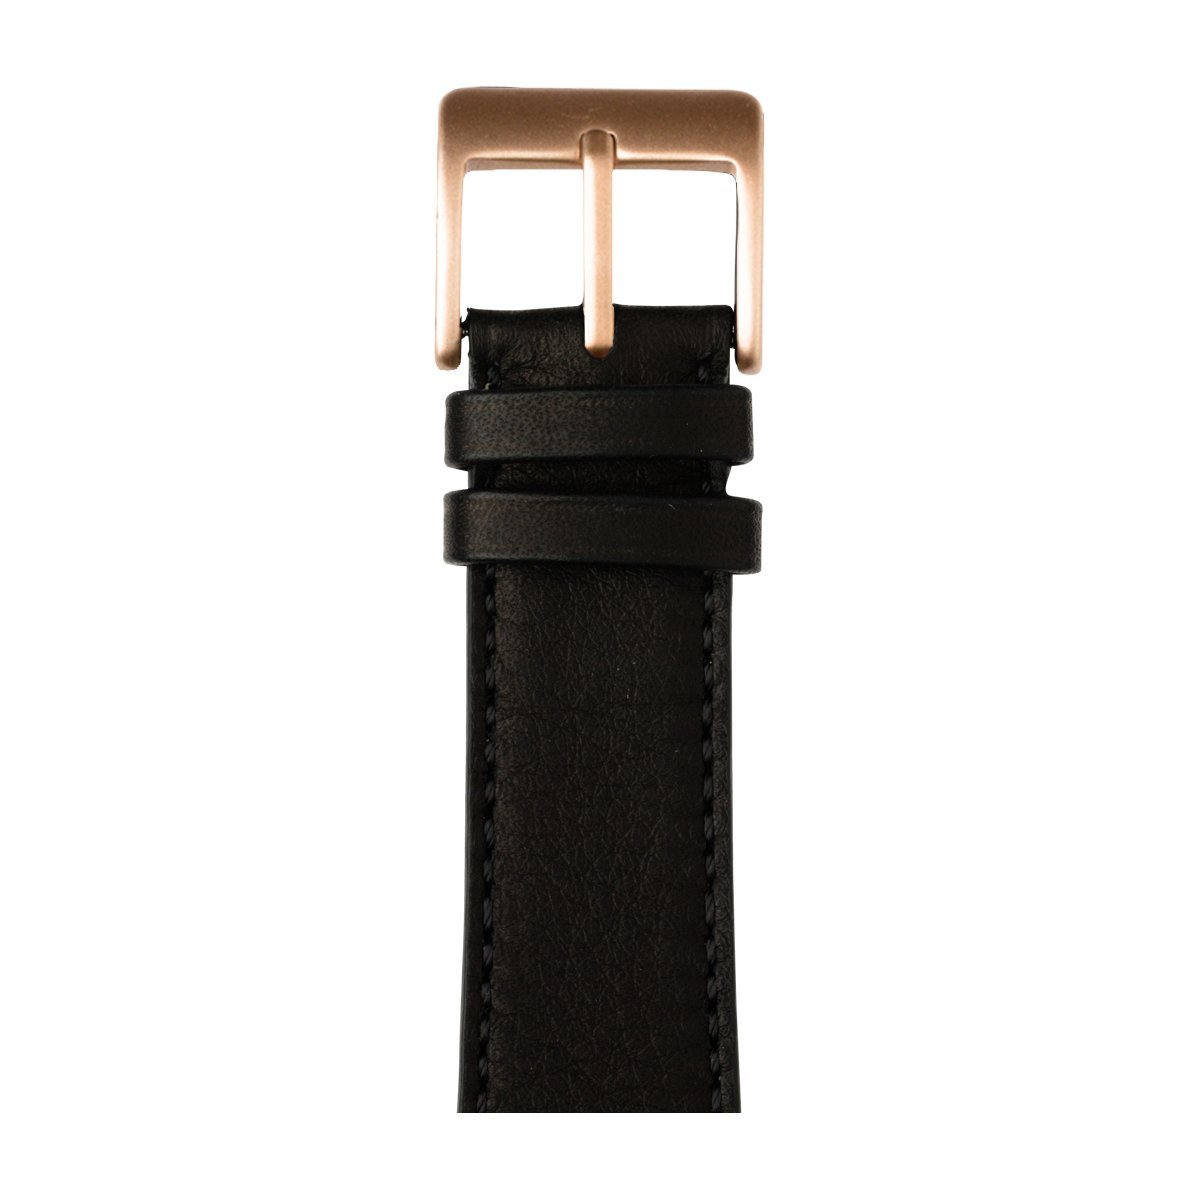 Roobaya | Premium Sauvage Leather Apple Watch Band in Black | Includes Adapters matching the Color of the Apple Watch, Case Color:Rose Gold Aluminum, Size:38 mm